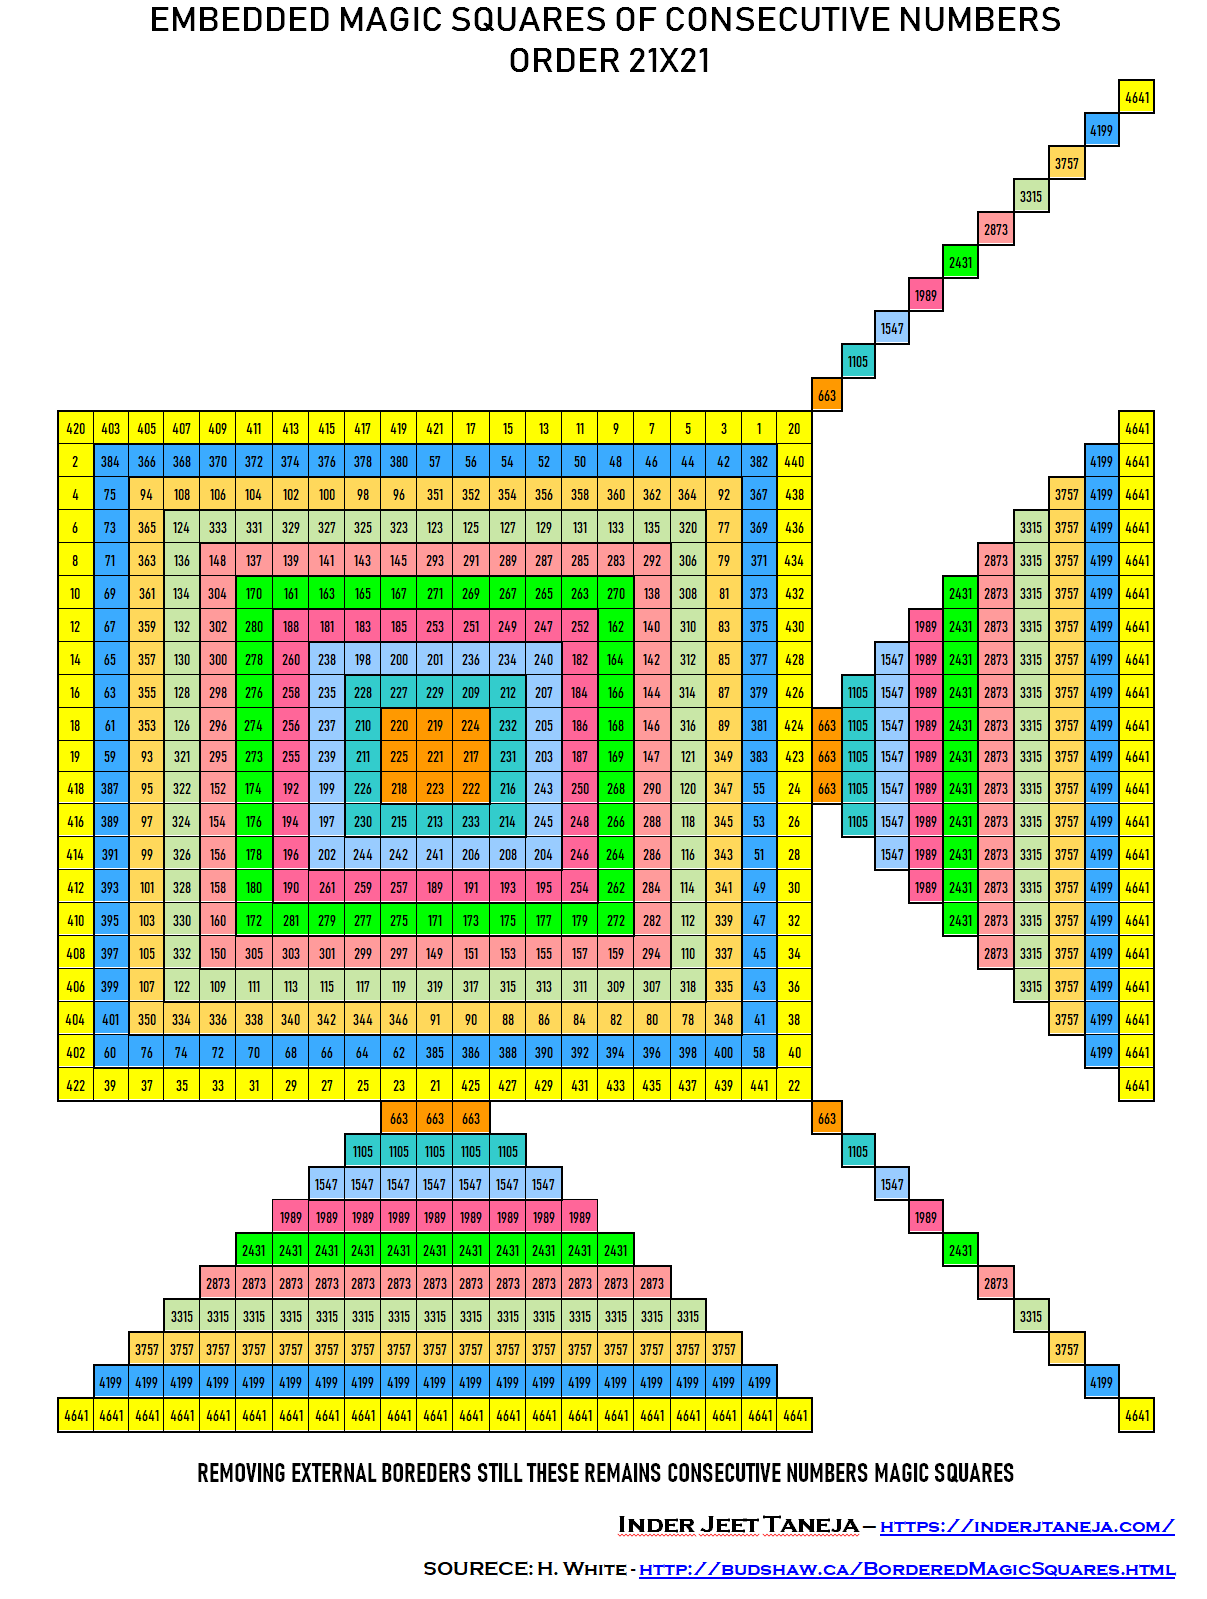 21x21.png